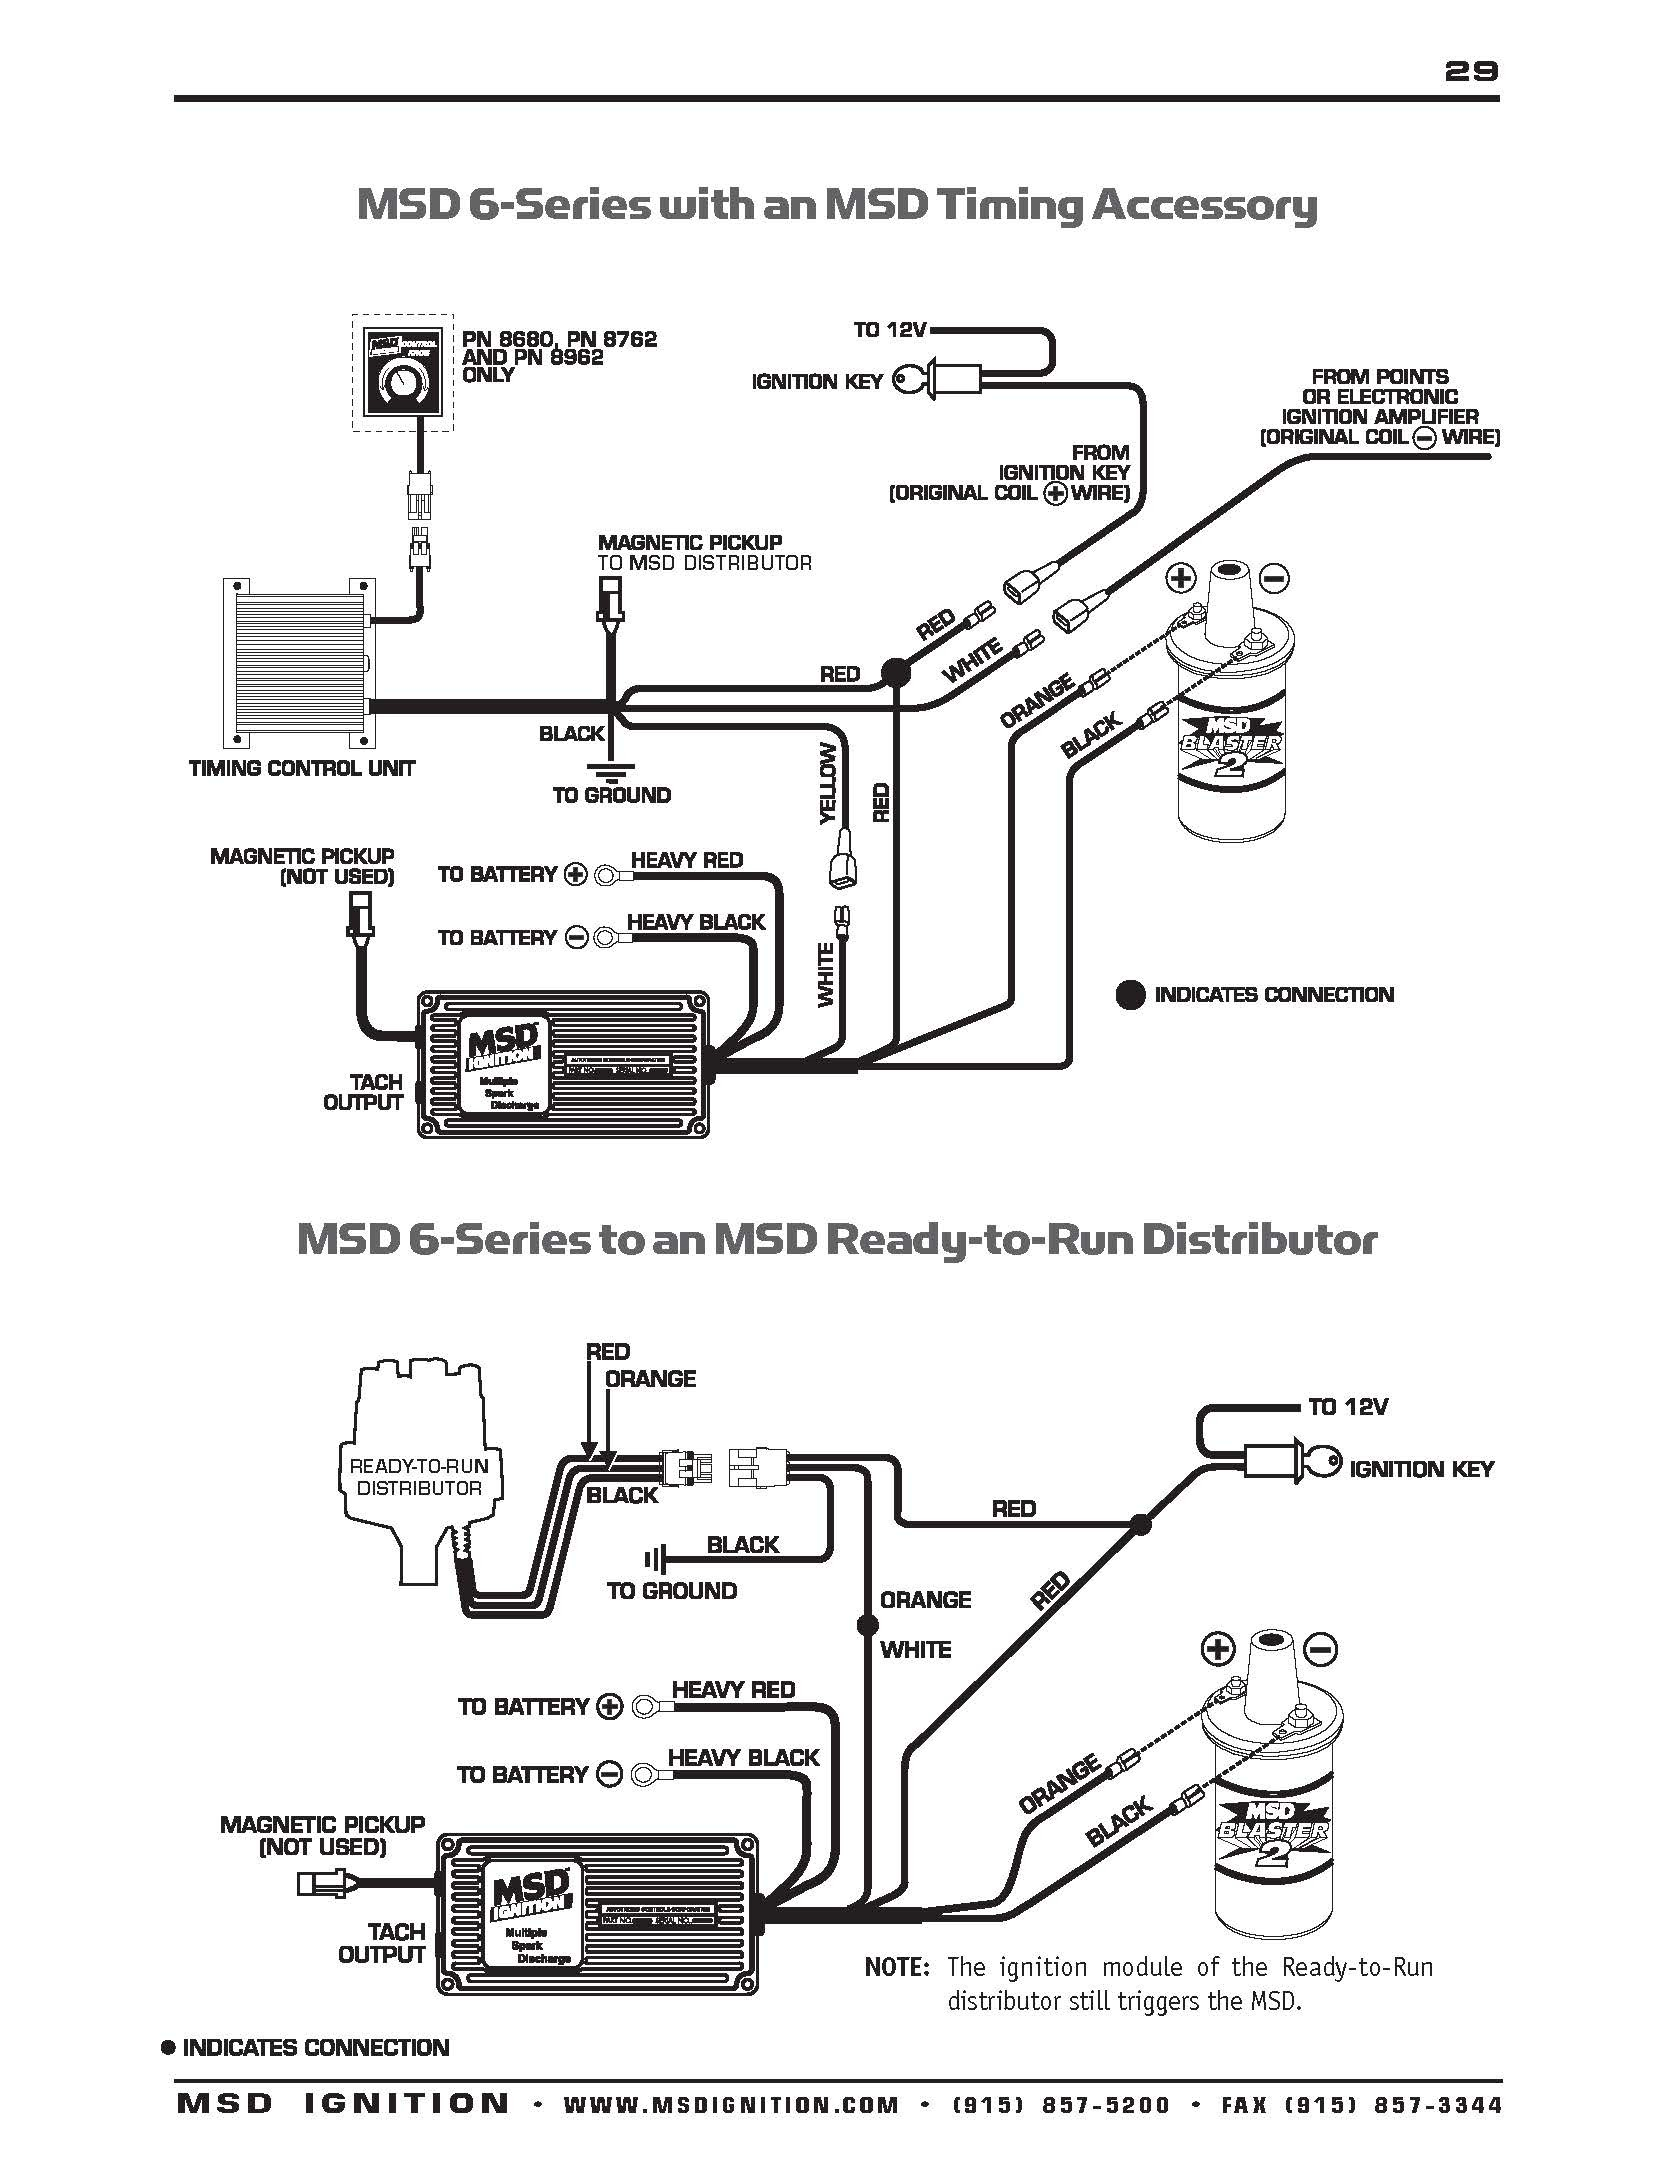 msd 8365 wiring diagram residential electrical symbols u2022 rh wiringdiagramnow today MSD 8365 Problems HEI Distributor Wiring Diagram